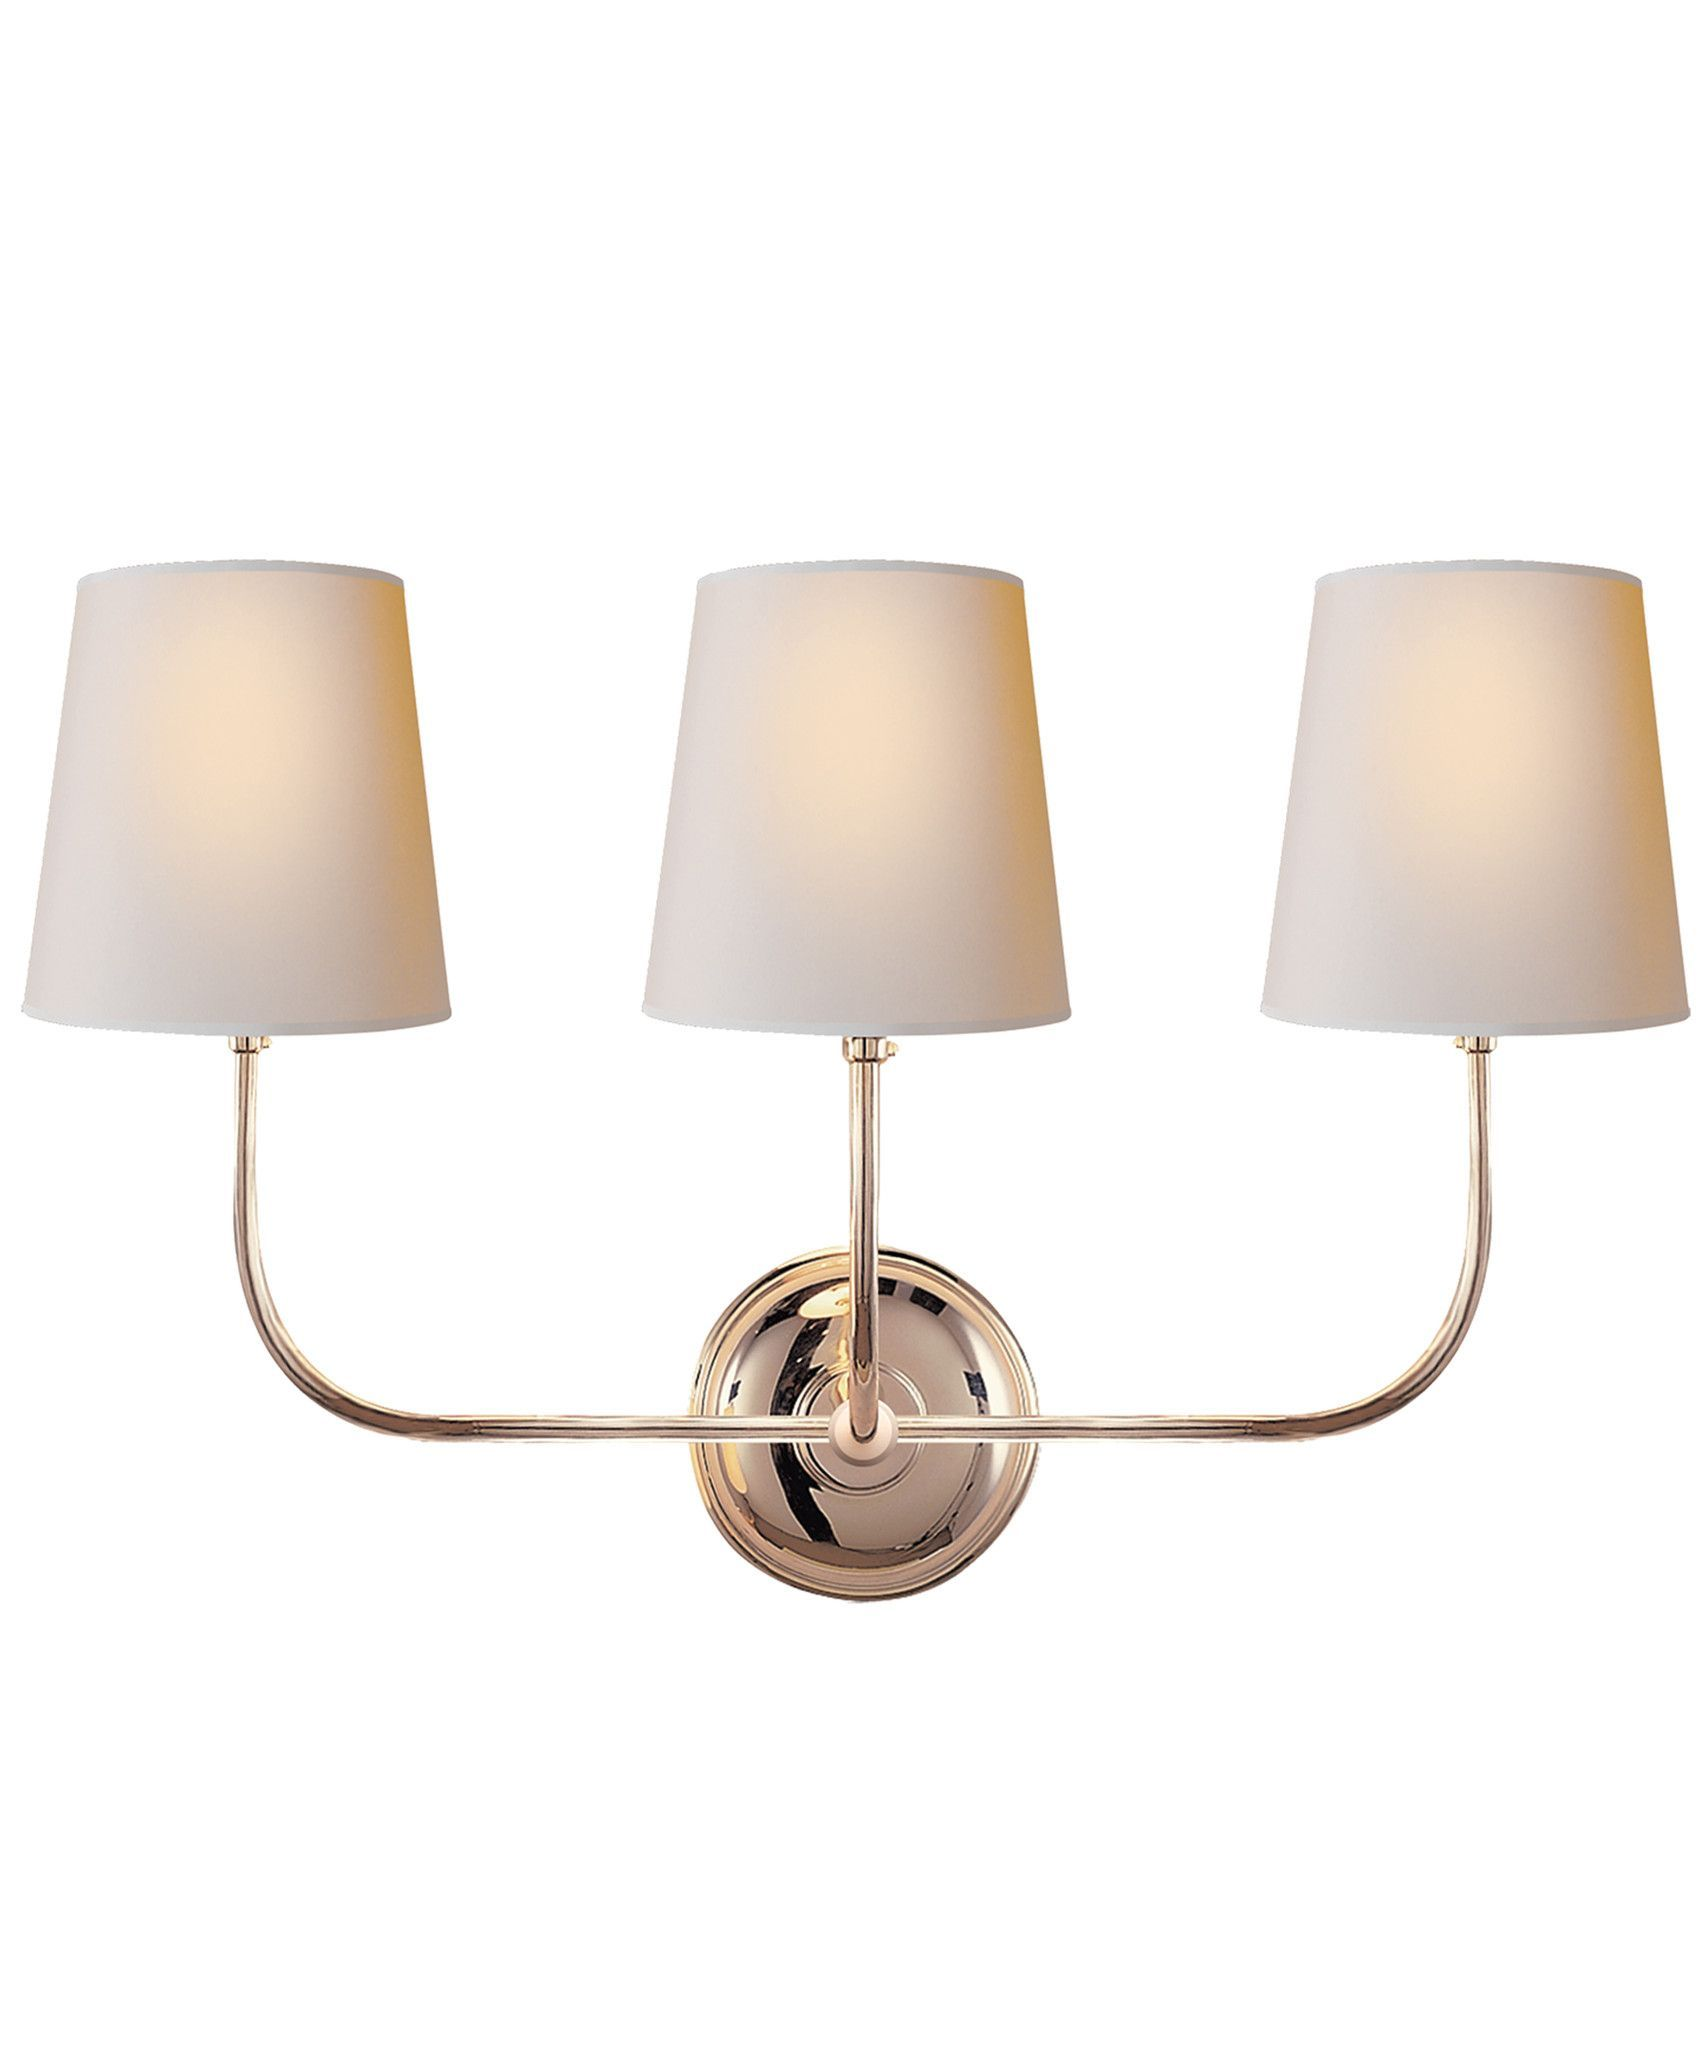 Vendome Triple Wall Sconce Polished Nickel Products